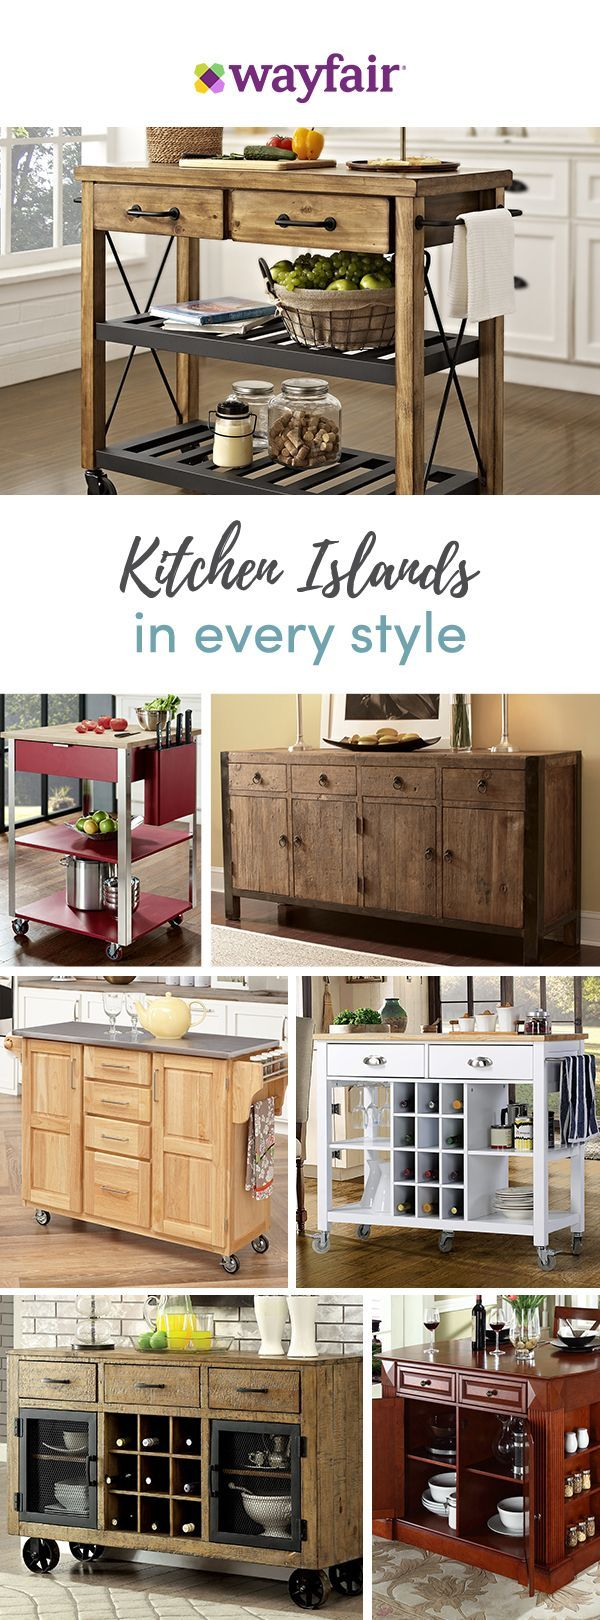 We know that when it comes to the kitchen, space is a key factor. Treat yourself to style, storage and convenience with our multi-purpose kitchen carts. Whether you need extra prep space or storage for appliances, you'll find your perfect cart with our endless options. Get access to exclusive deals at up to 70% OFF and enjoy FREE SHIPPING on all orders over $49 at Wayfair! Sign up and shop now!